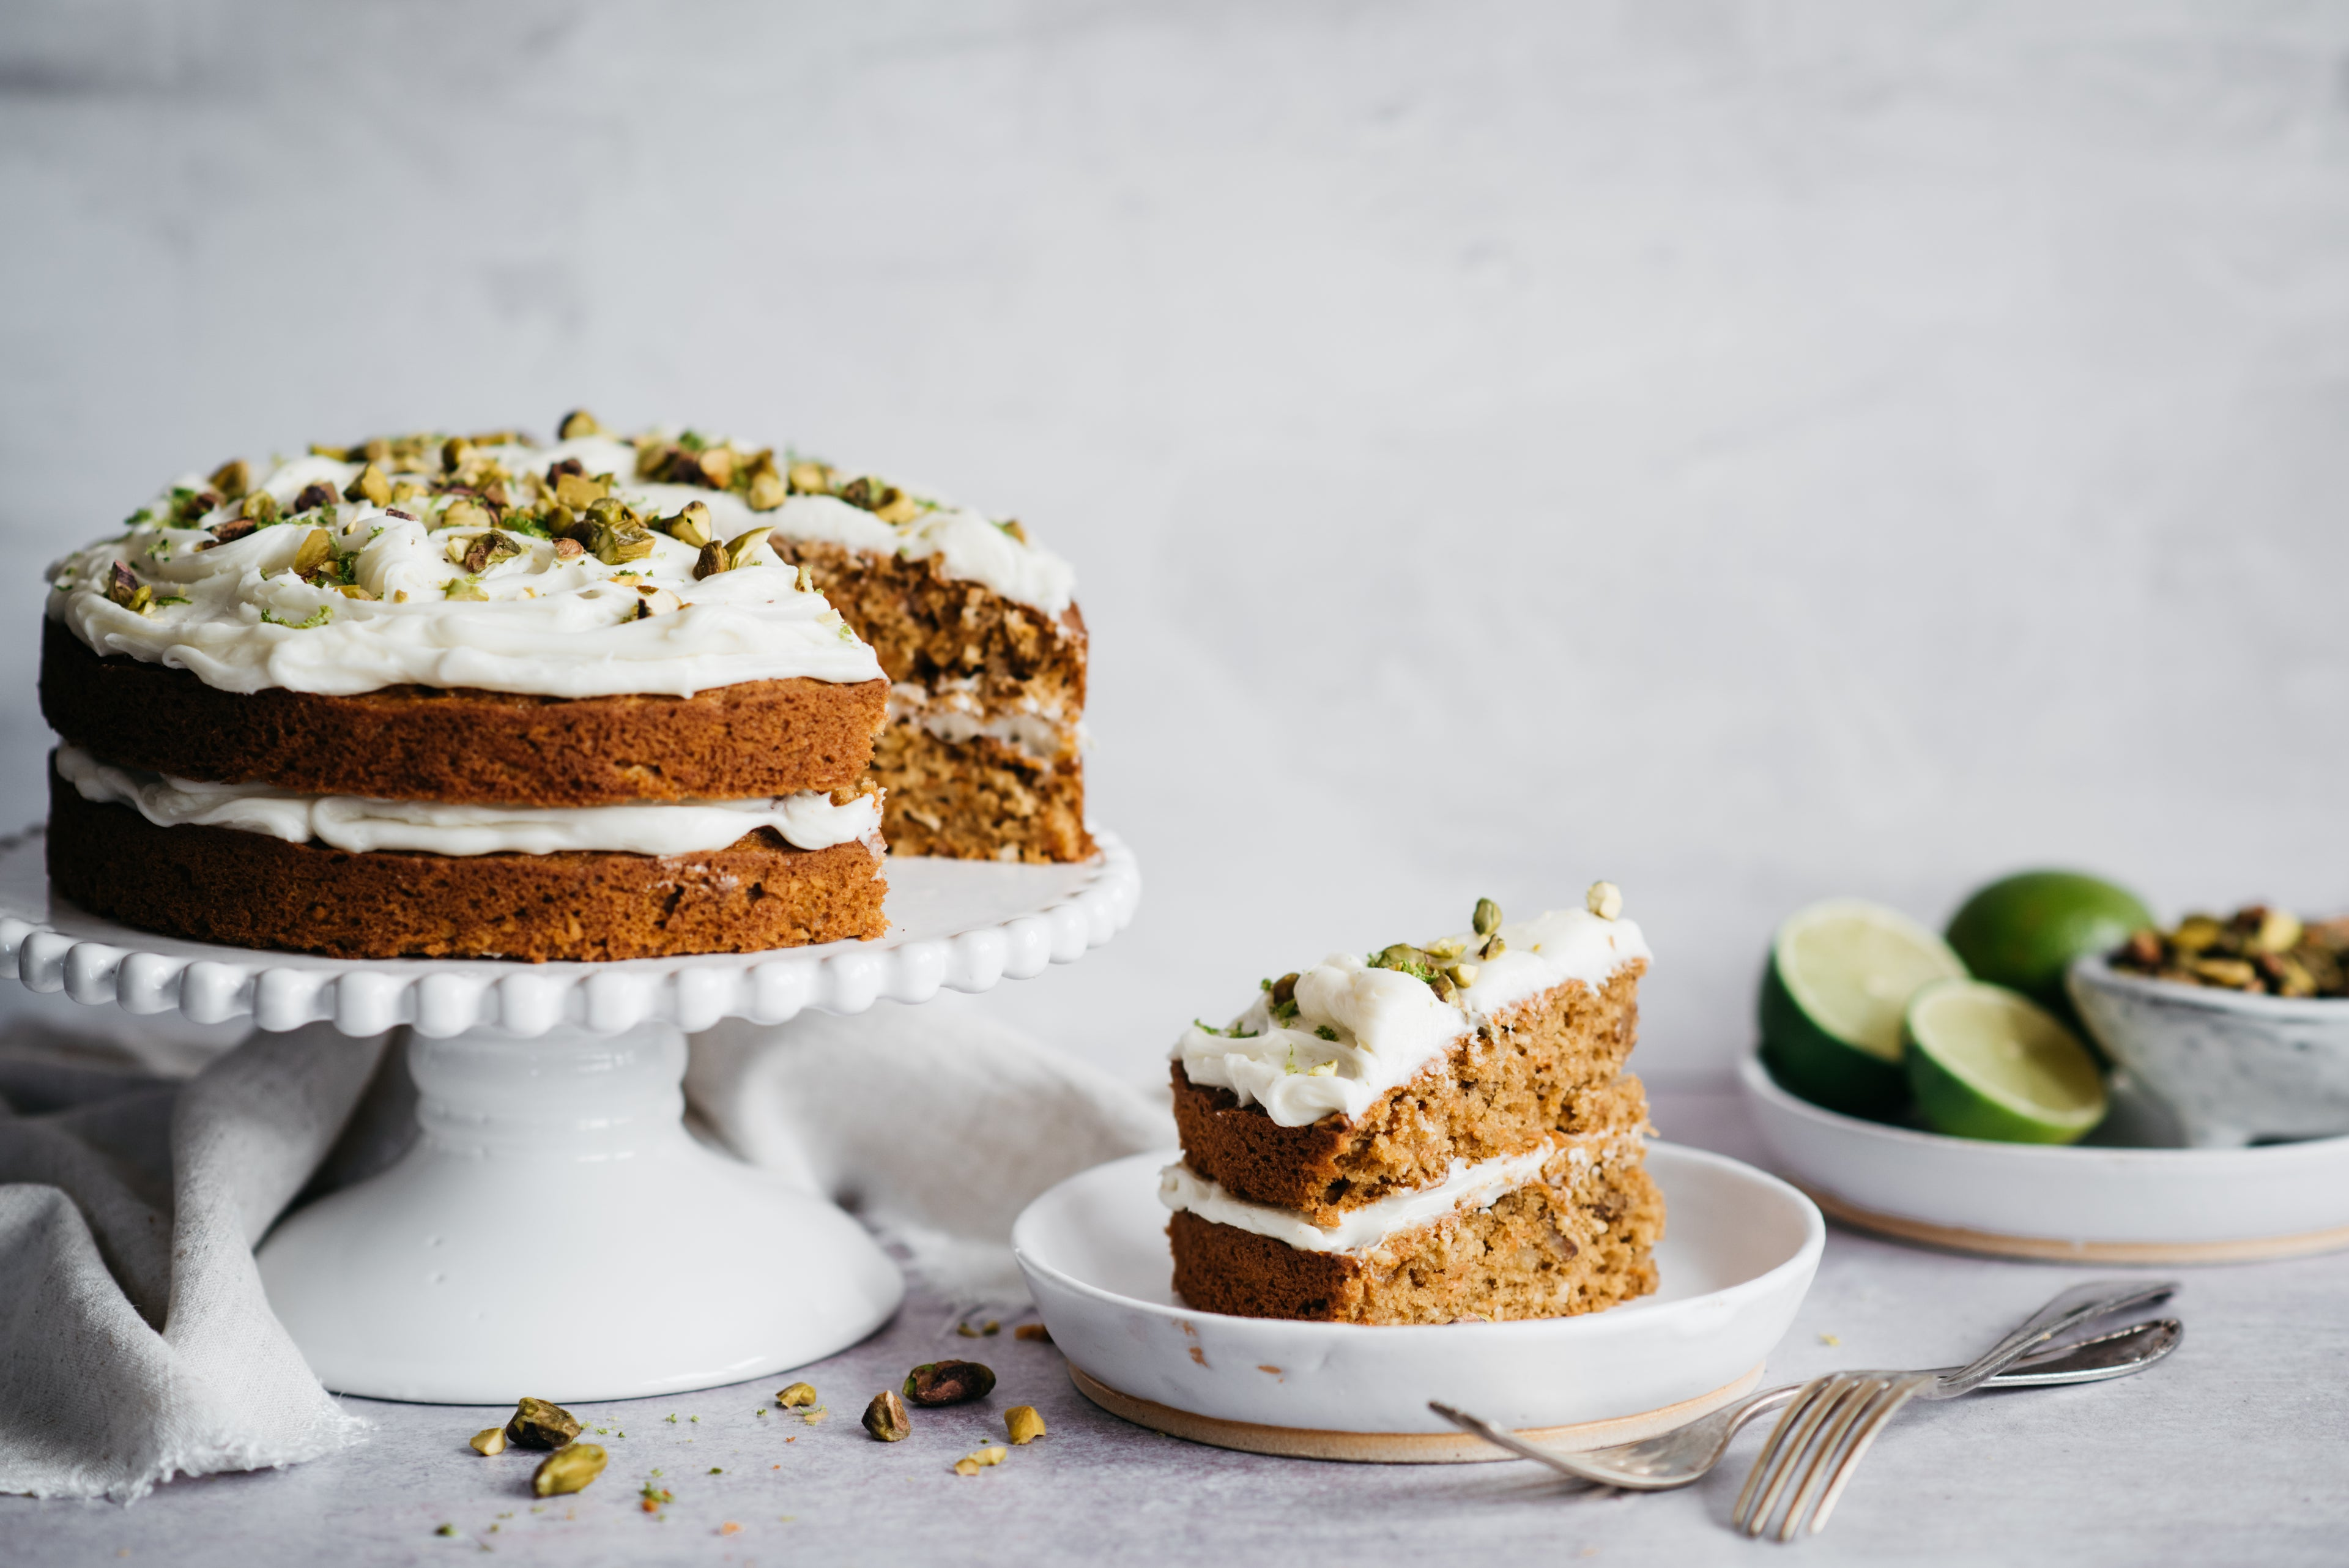 Carrot cake with icing on cake stand and cake slice on plate. Limes in the background